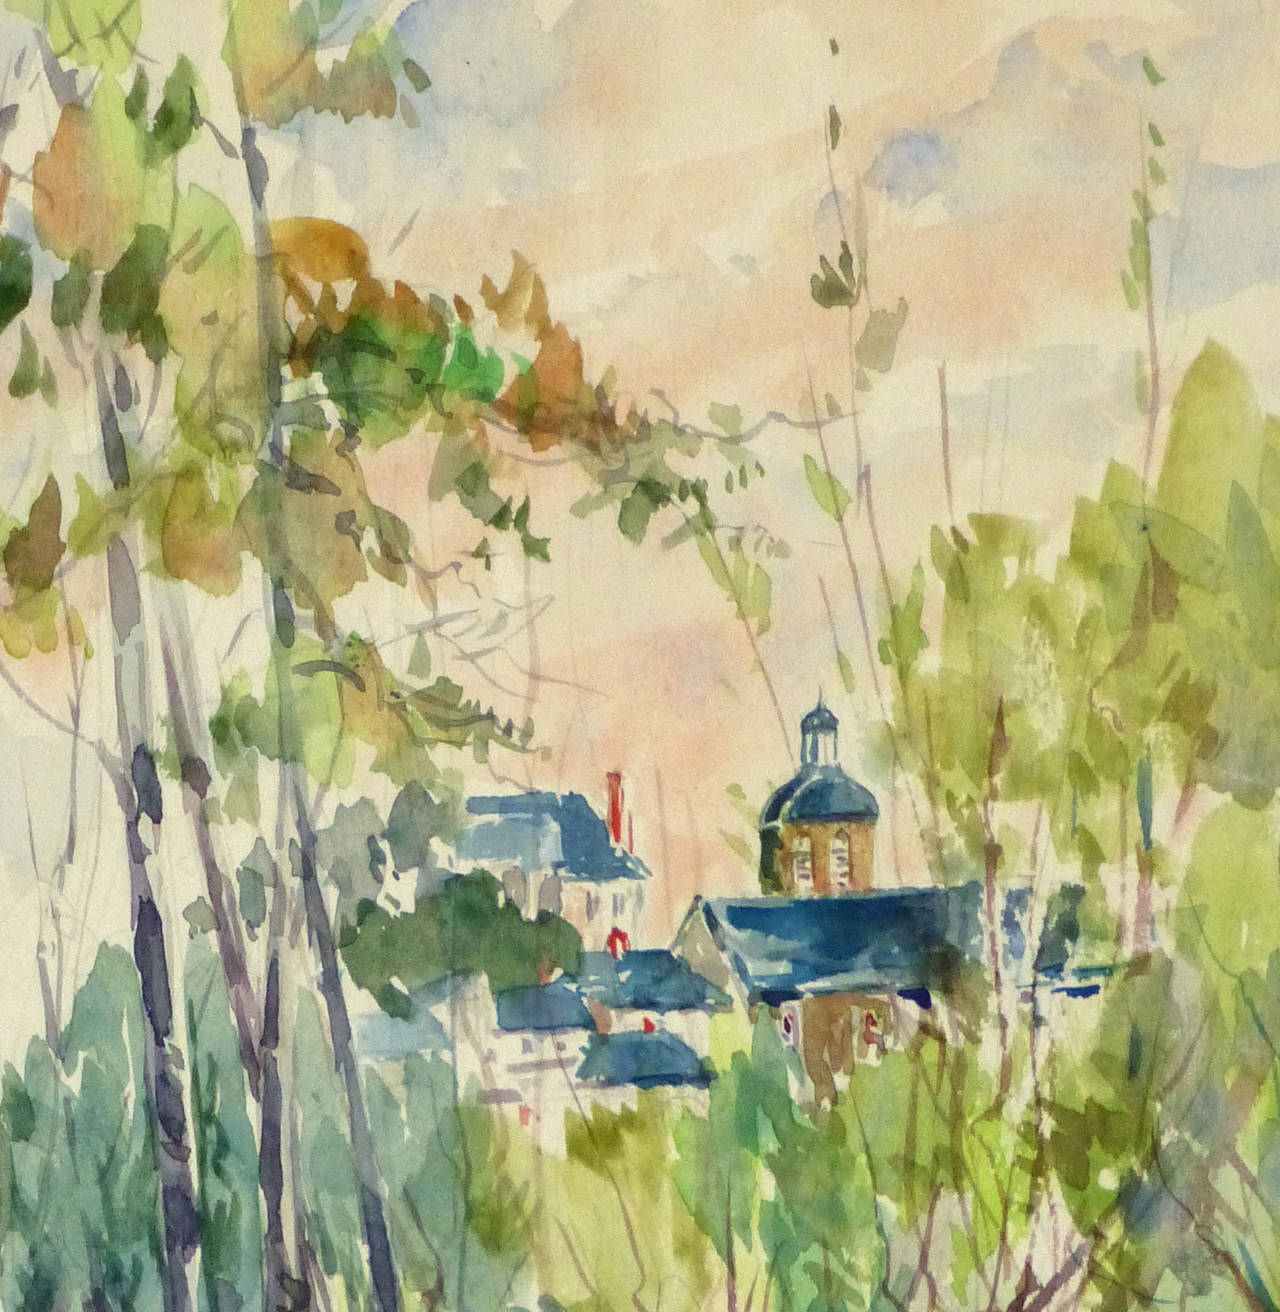 Vintage French Watercolor Landscape - Art by Roger Tochon